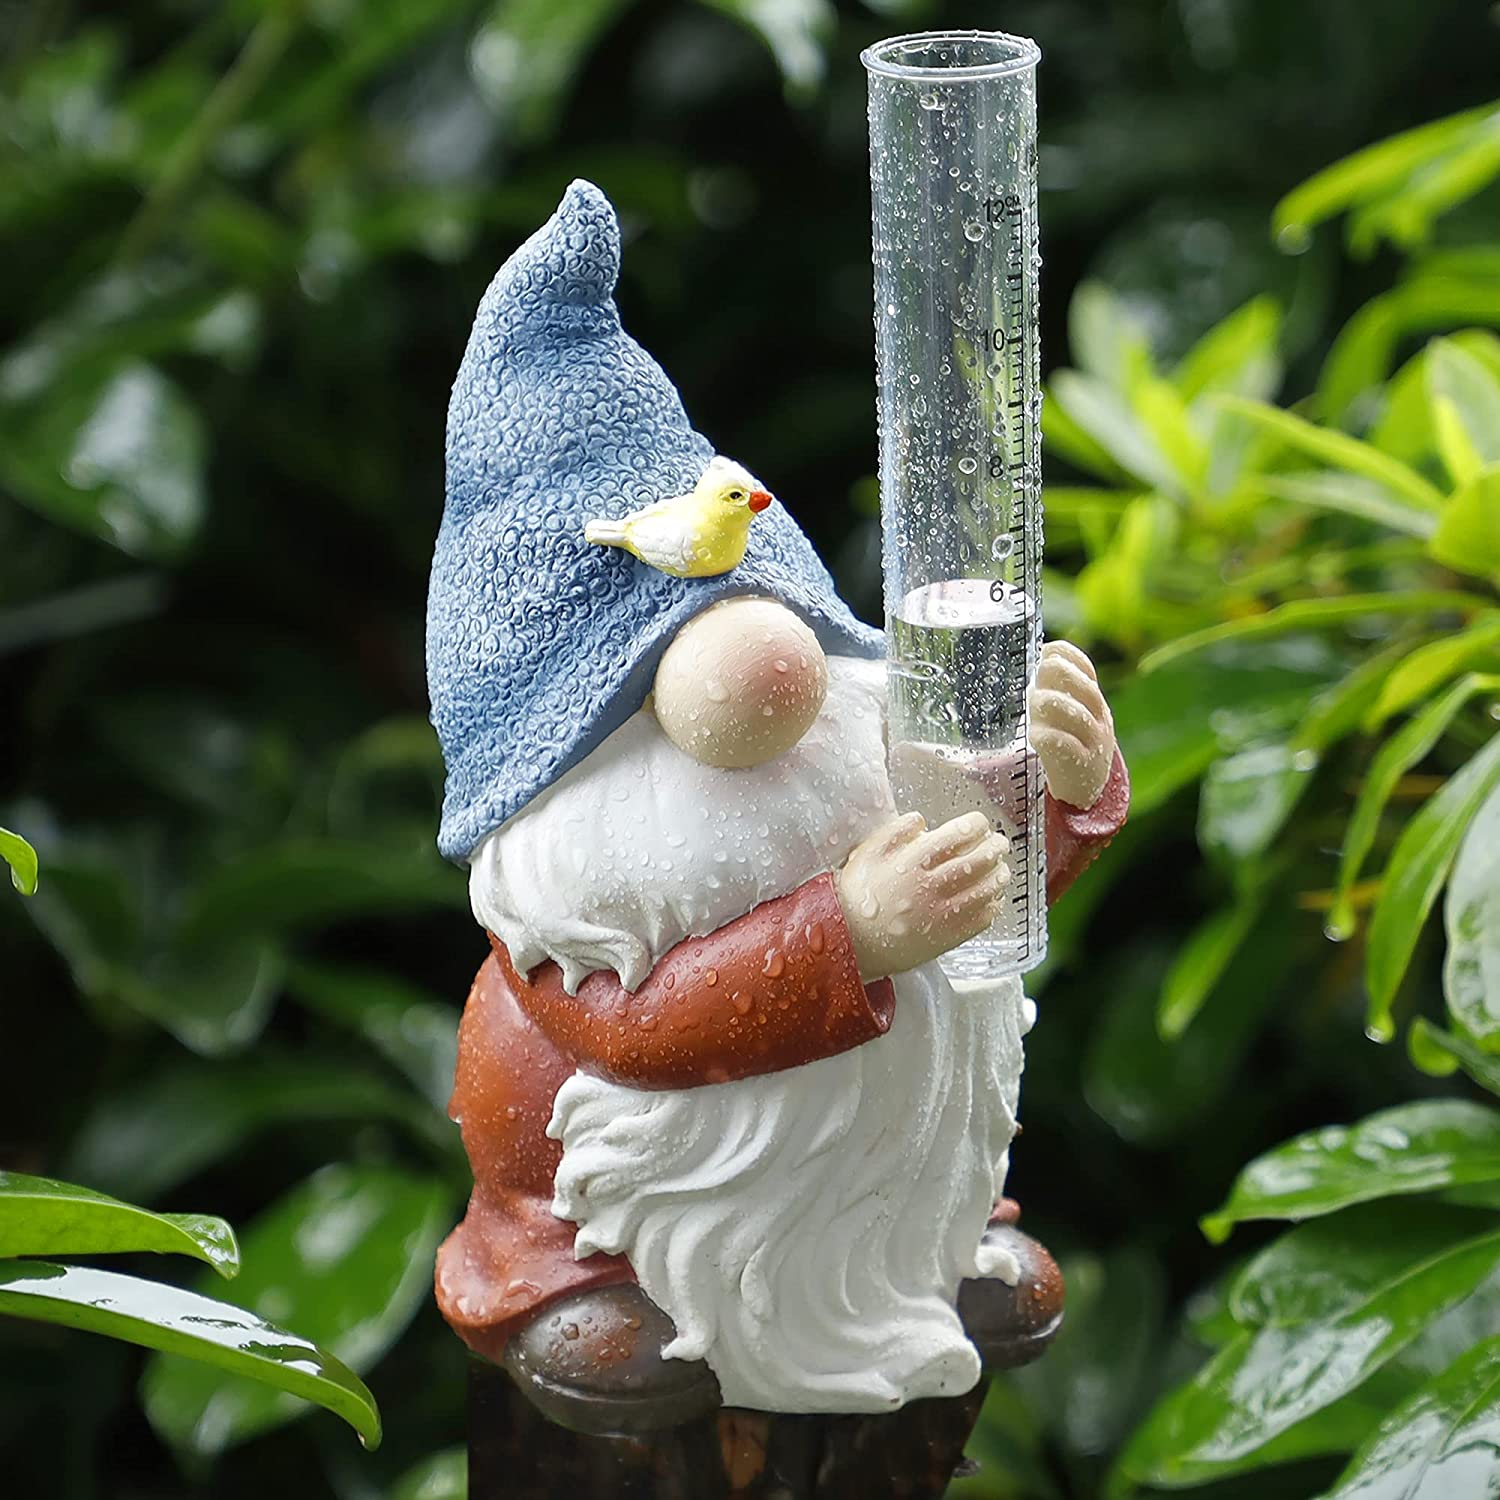 FORUP Resin Gnome Rain Gauges, Resin Gnome Garden Statue with a Plastic Rain Gauge, Hand Painted Gnome Sculpture Water Gauge for Rain